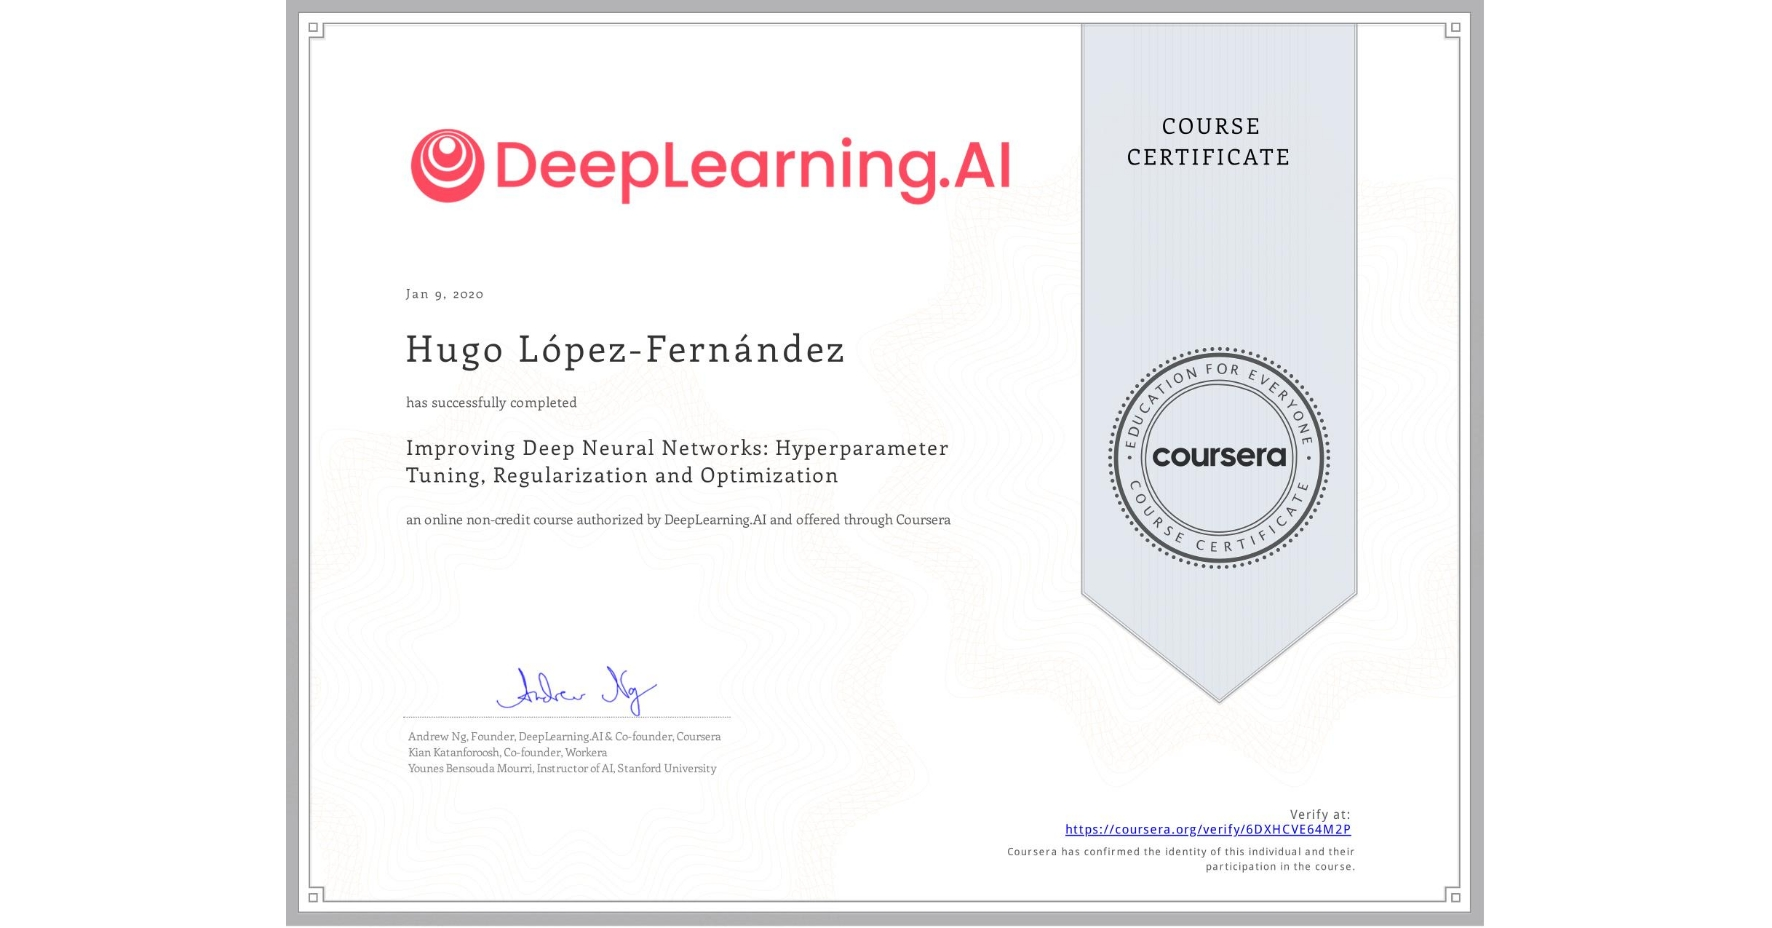 View certificate for Hugo López-Fernández, Improving Deep Neural Networks: Hyperparameter Tuning, Regularization and Optimization, an online non-credit course authorized by DeepLearning.AI and offered through Coursera